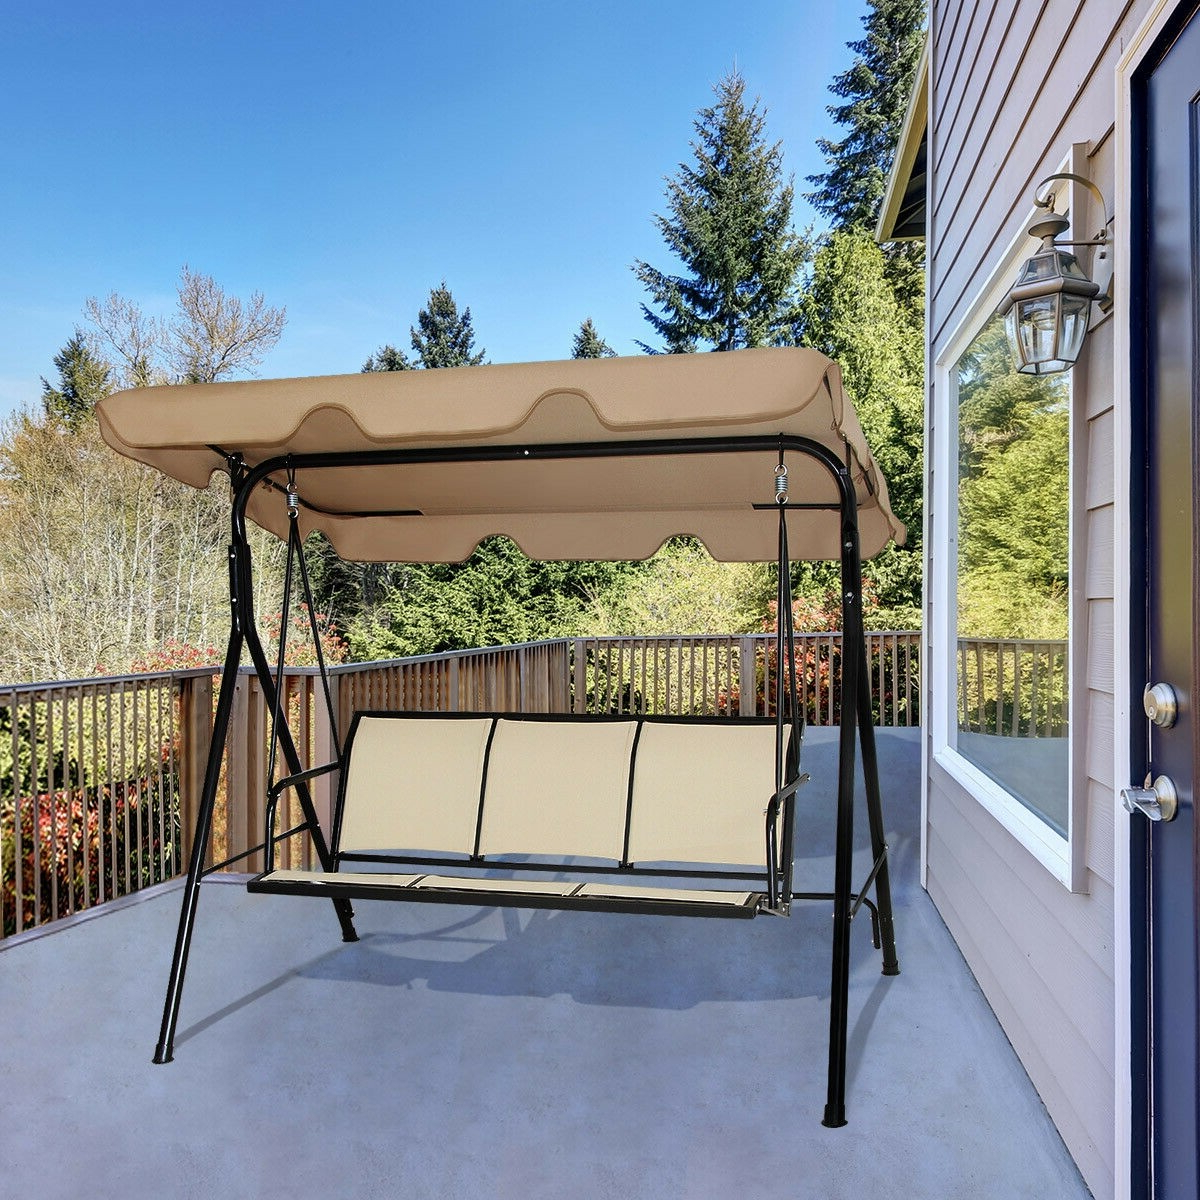 3 Person Brown Steel Outdoor Swings Regarding Favorite Outdoor Patio 3 Person Porch Swing Bench Chair With Canopy (View 13 of 25)